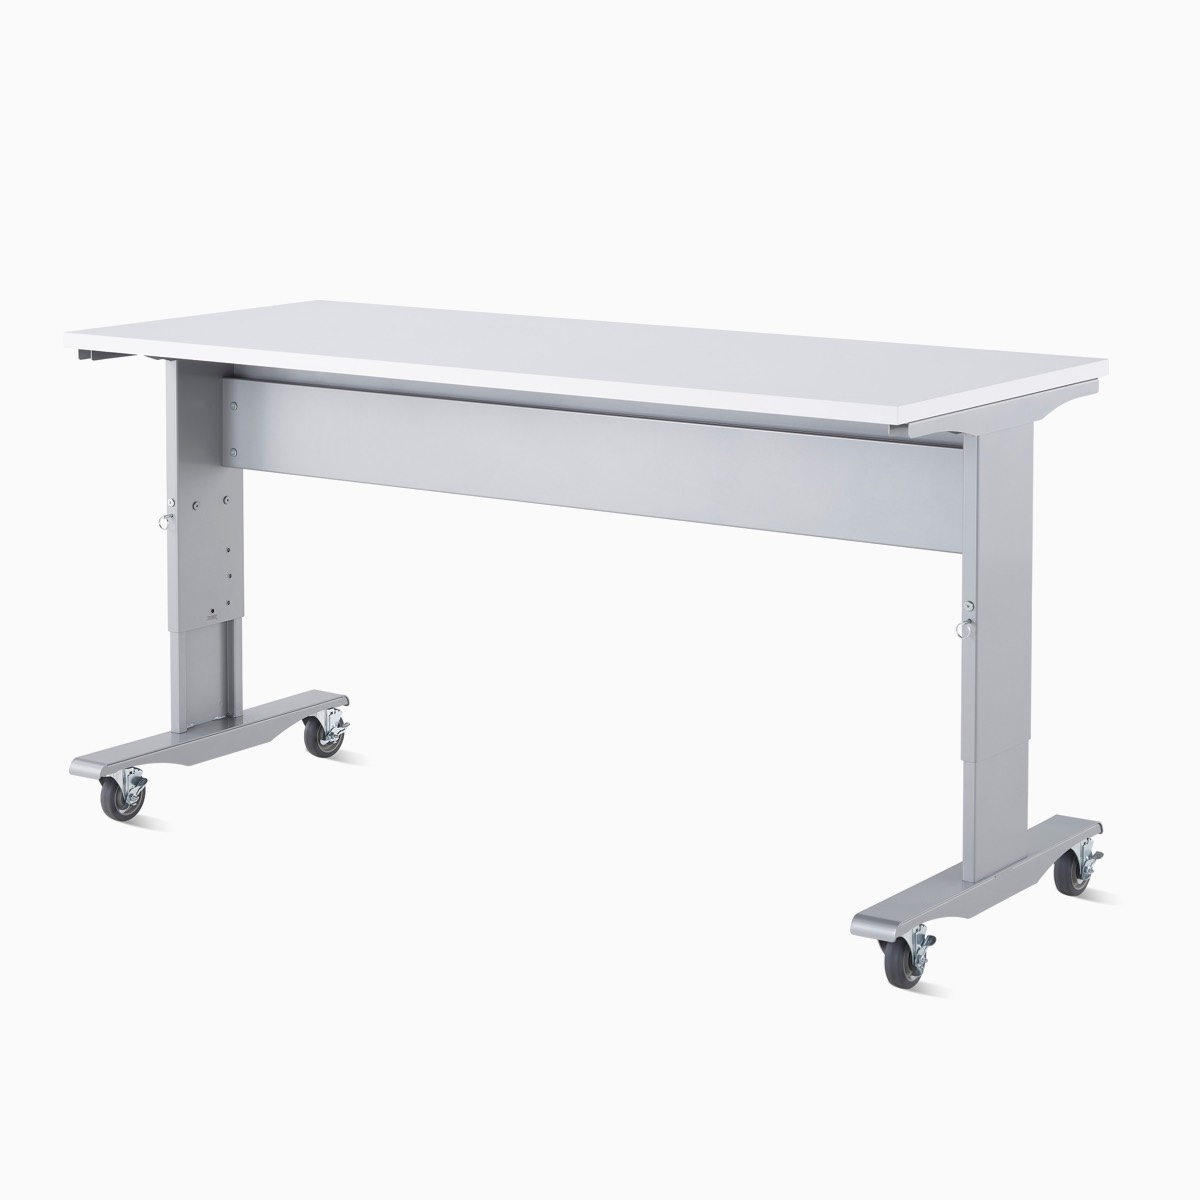 Detail of a Co/Struc System mobile and height-adjustable work process table with a silver frame and white top surface.